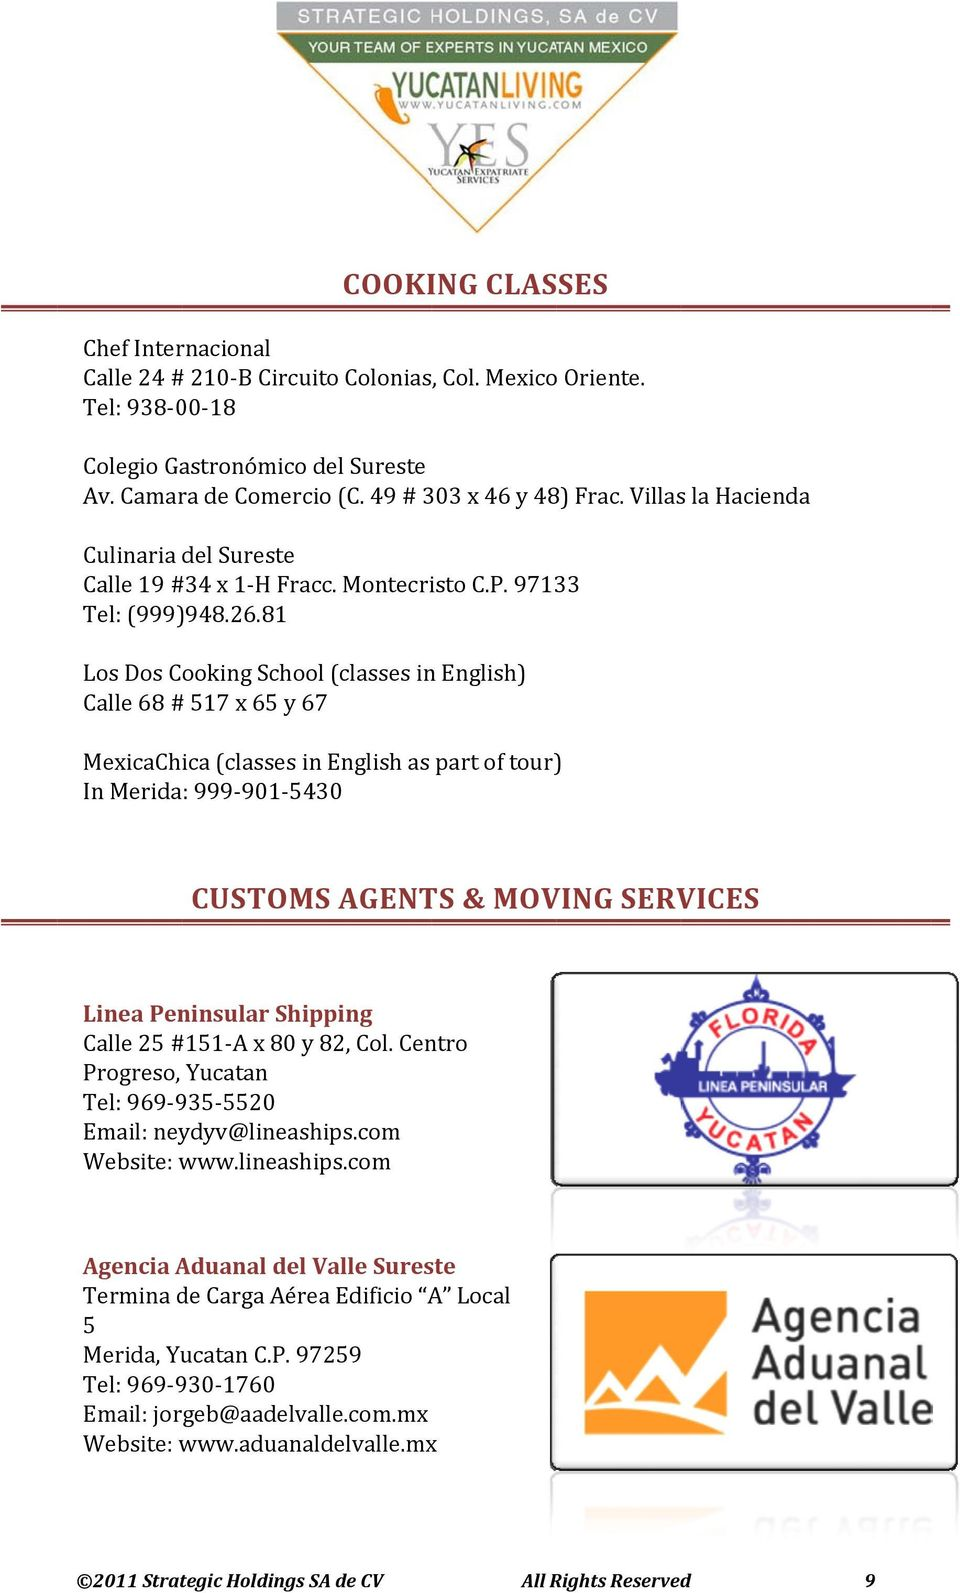 81 Los Dos Cooking School (classes in English) Calle 68 # 517 x 65 y 67 MexicaChica (classes in English as part of tour) In Merida: 999 901 5430 CUSTOMS AGENTS & MOVING SERVICES Linea Peninsular